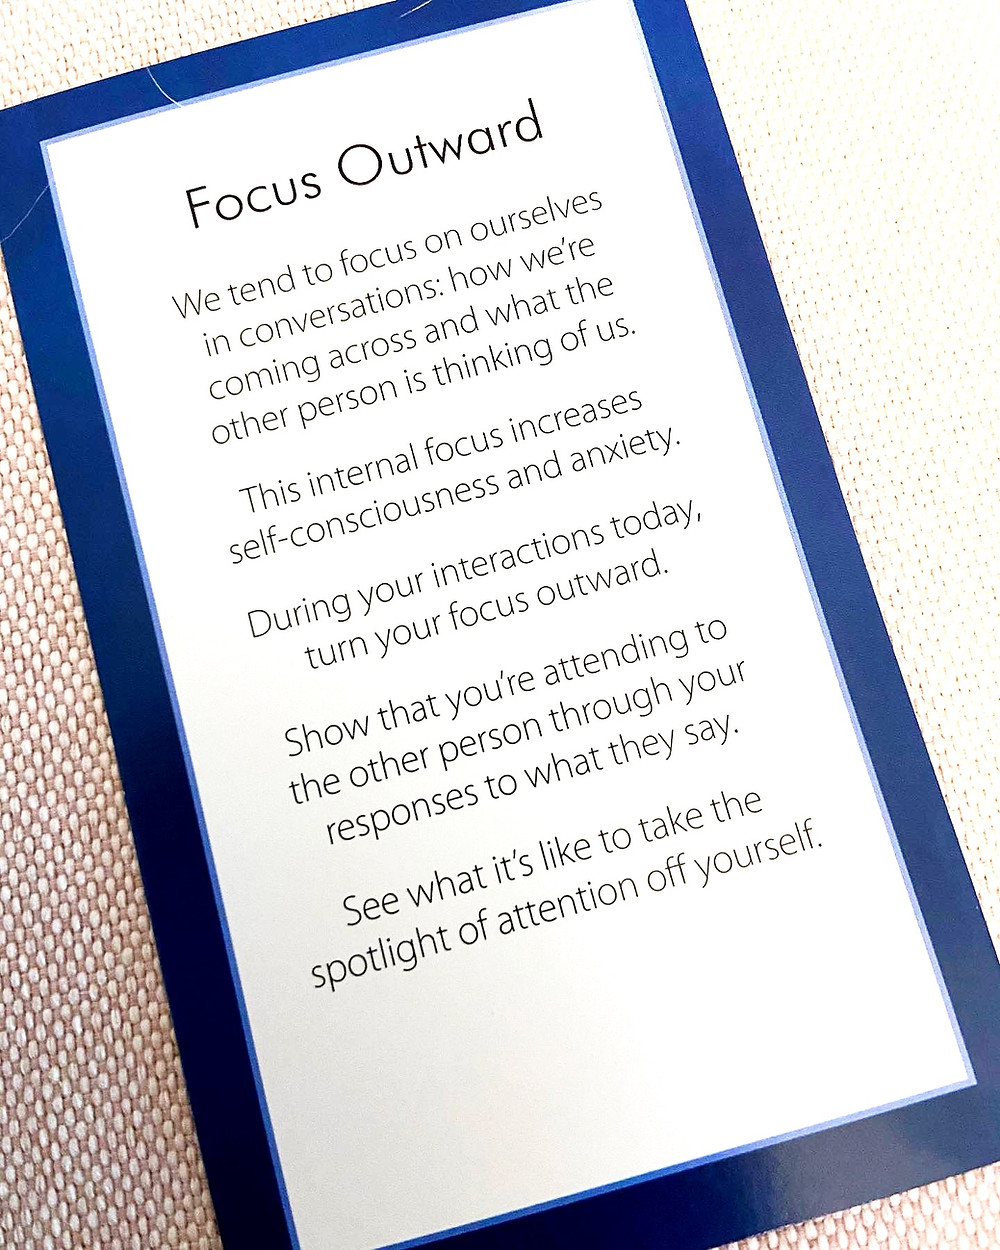 """Card with blue background that reads """"Focus Outward. We tend to focus on ourselves in conversations; how we're coming across and what the other person is thoinking of us.  This internal focus increases self-consciousness and axiety.  During your interactions today, turn your focus outward.  Show that you're attending to the other person through your responses to what they say.  See what it's like to take the attention off yourself."""""""